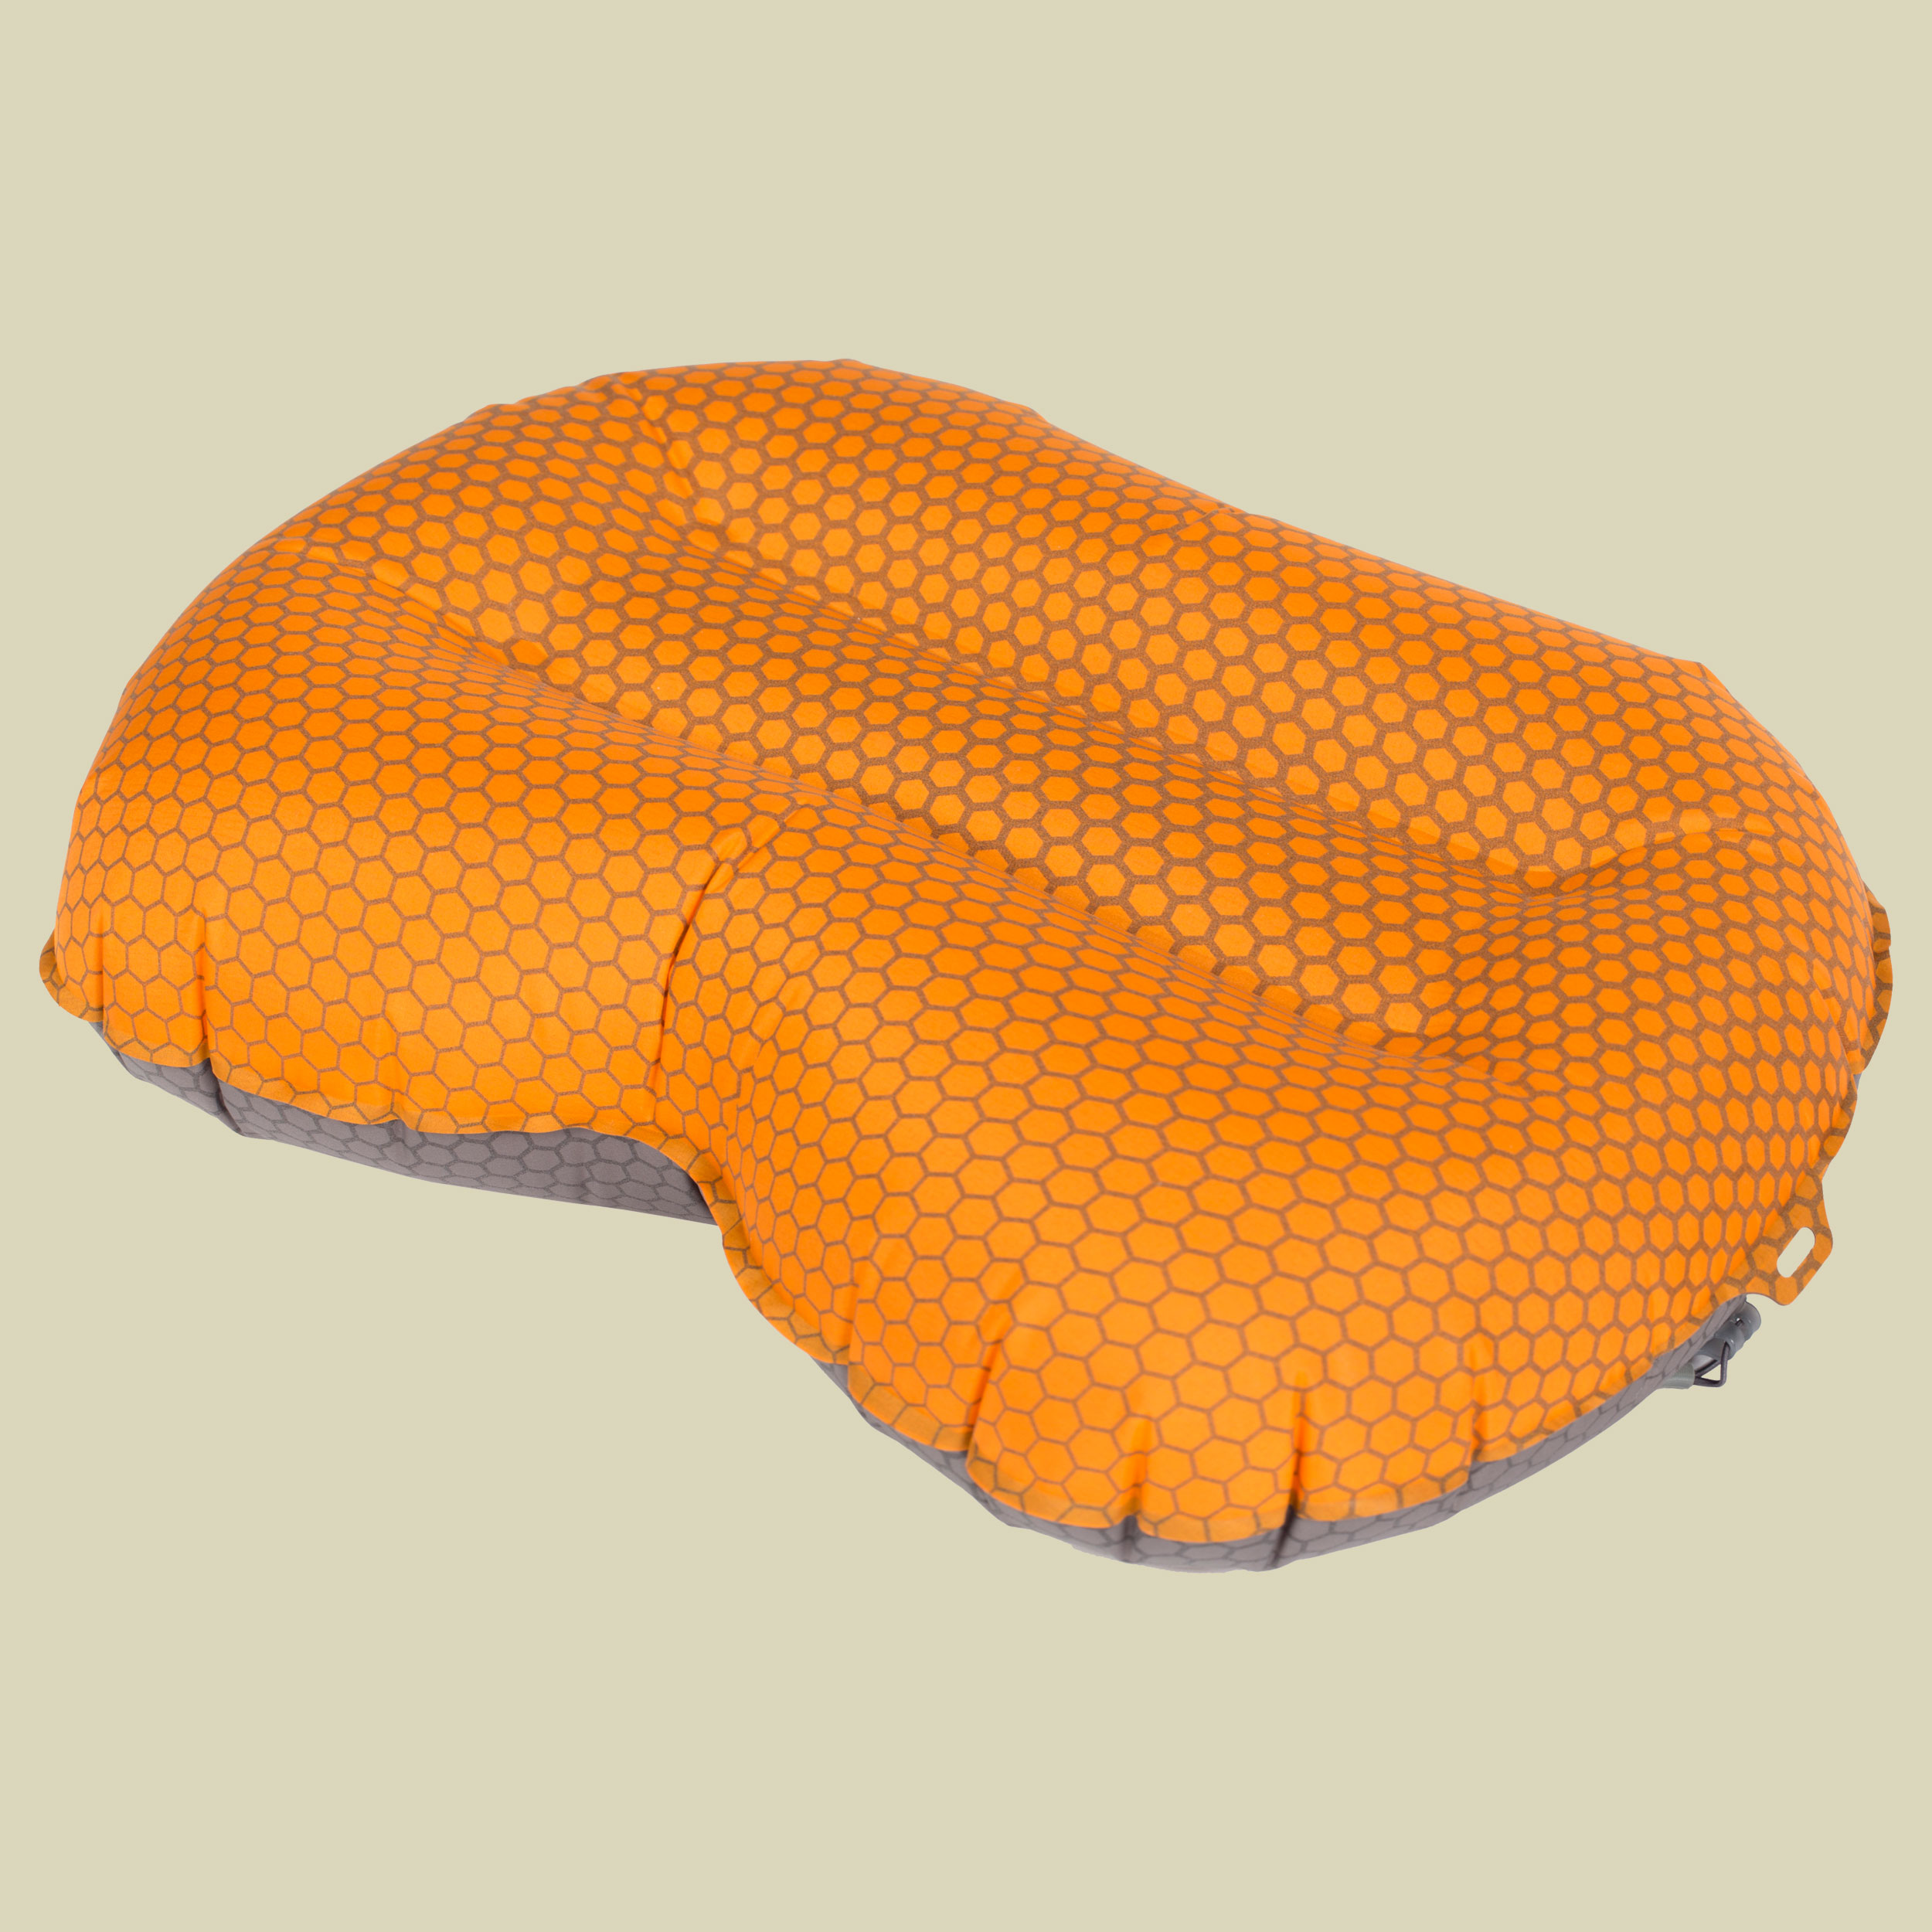 Exped Air Pillow UL L Kopfkissen Maße: 46 x 30 x 12 cm Farbe: orange